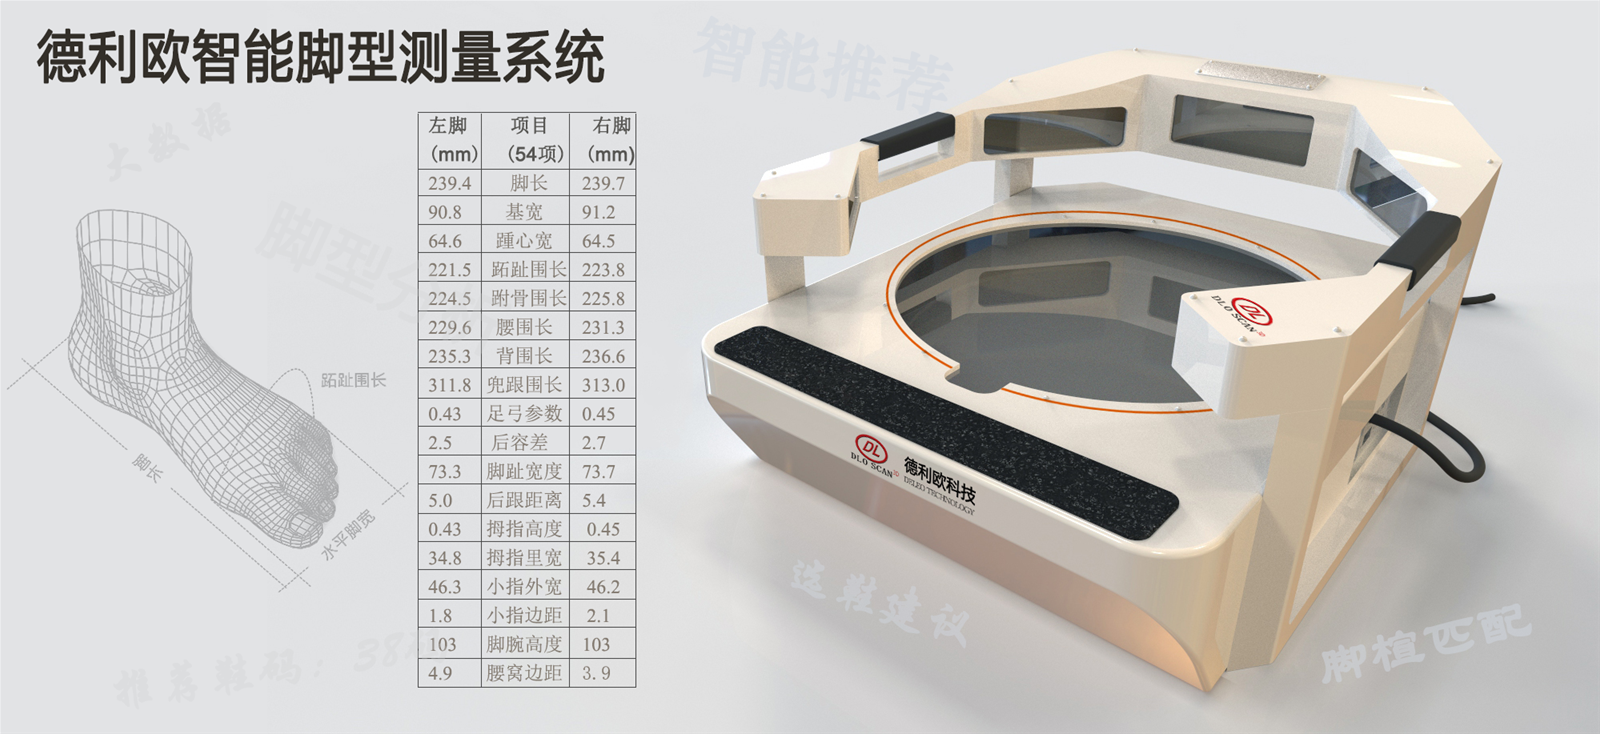 3D intelligent foot scanner complete output STL model files calculate more than 50 items of foot data